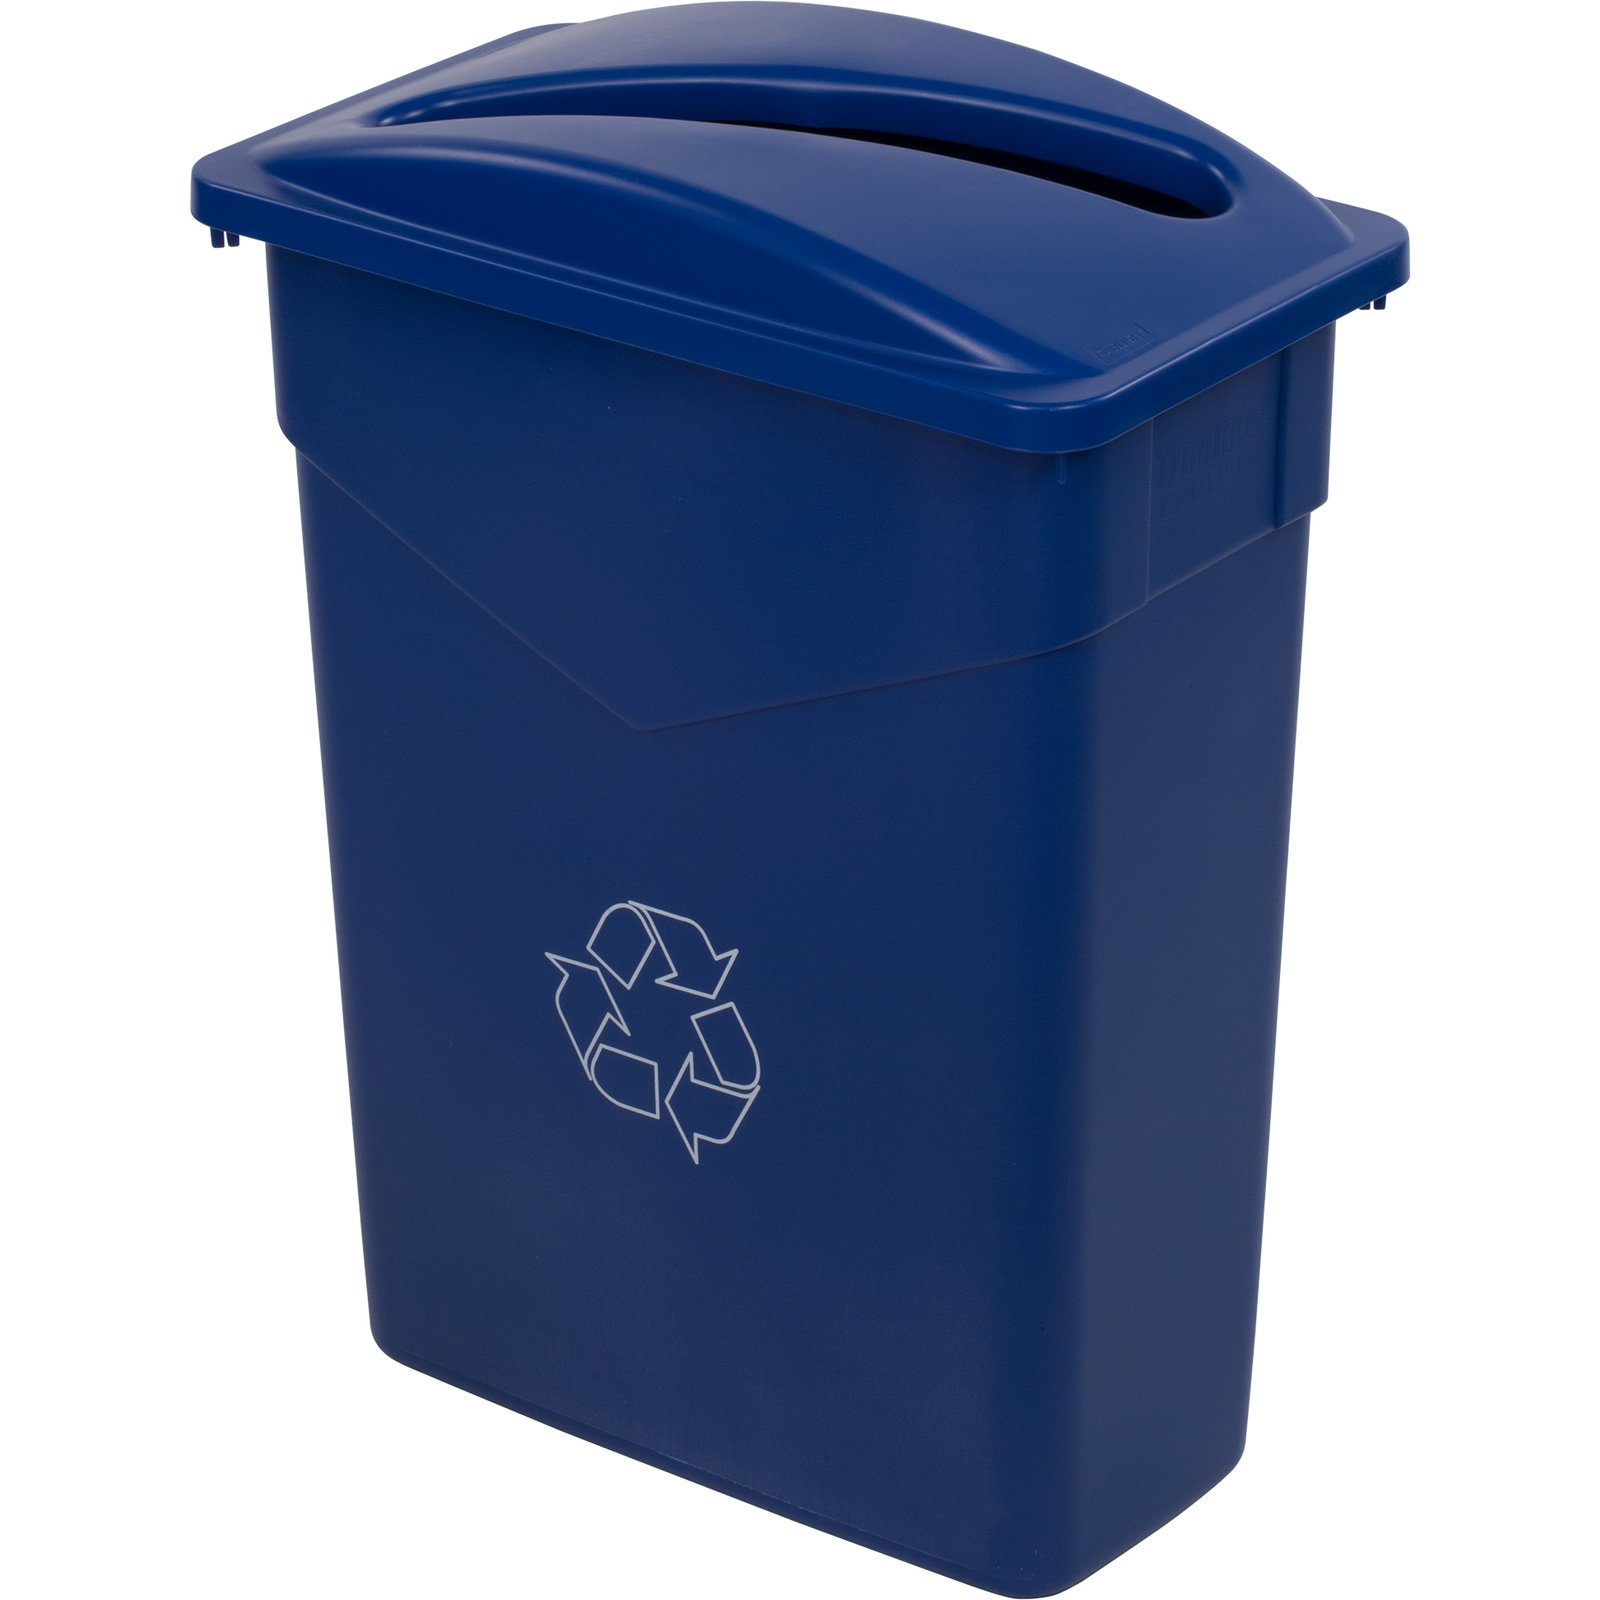 342015rec14 trimline rectangle recycle waste container for Surface container